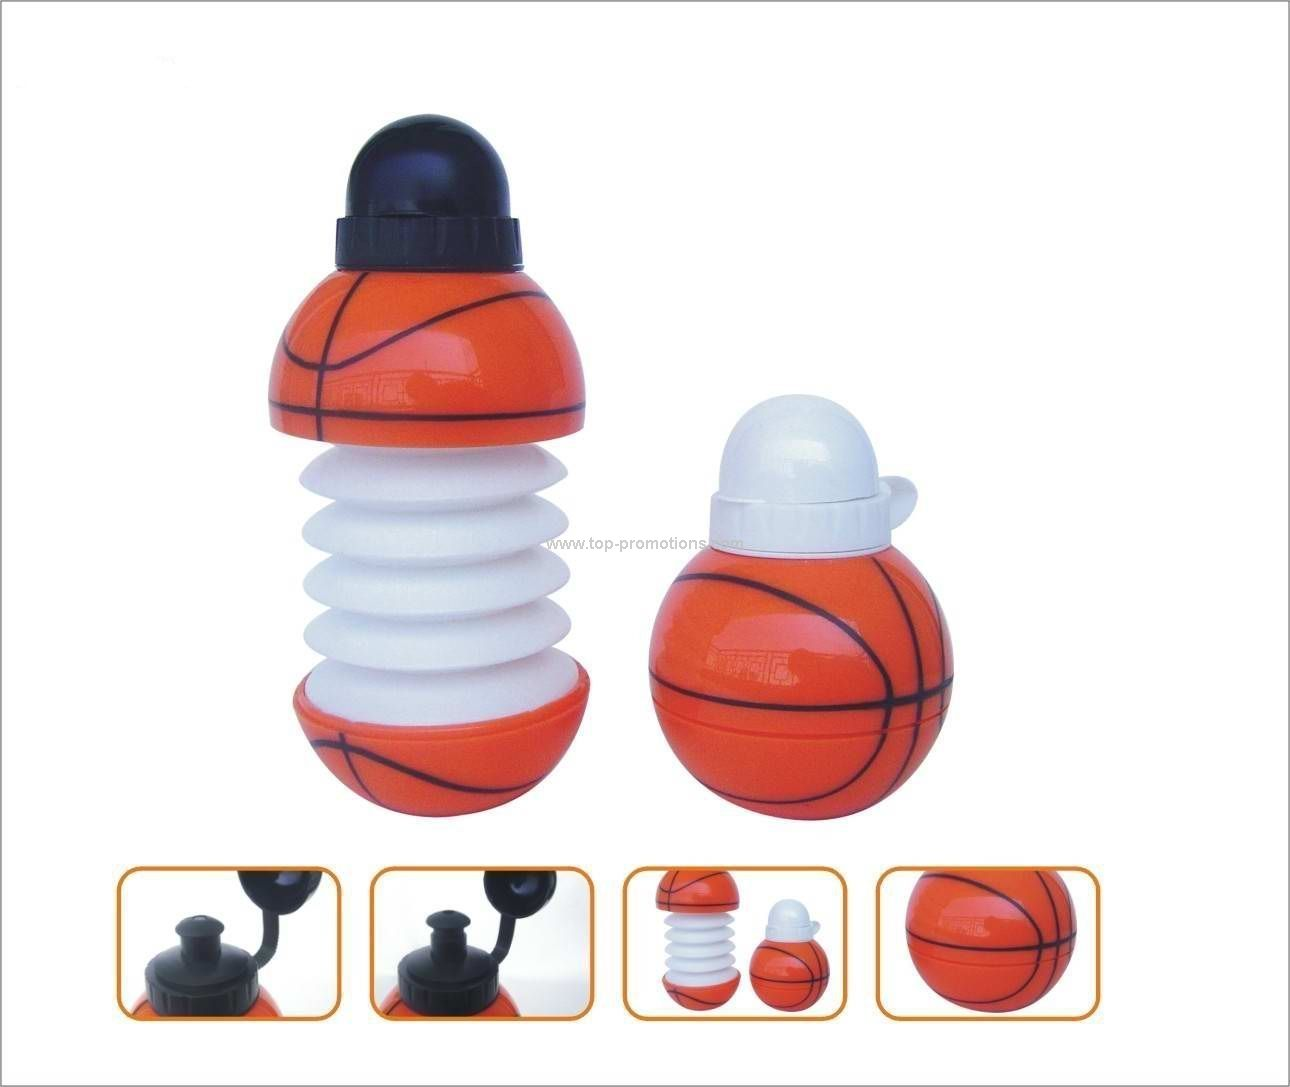 Collapsible Basketball Bottles